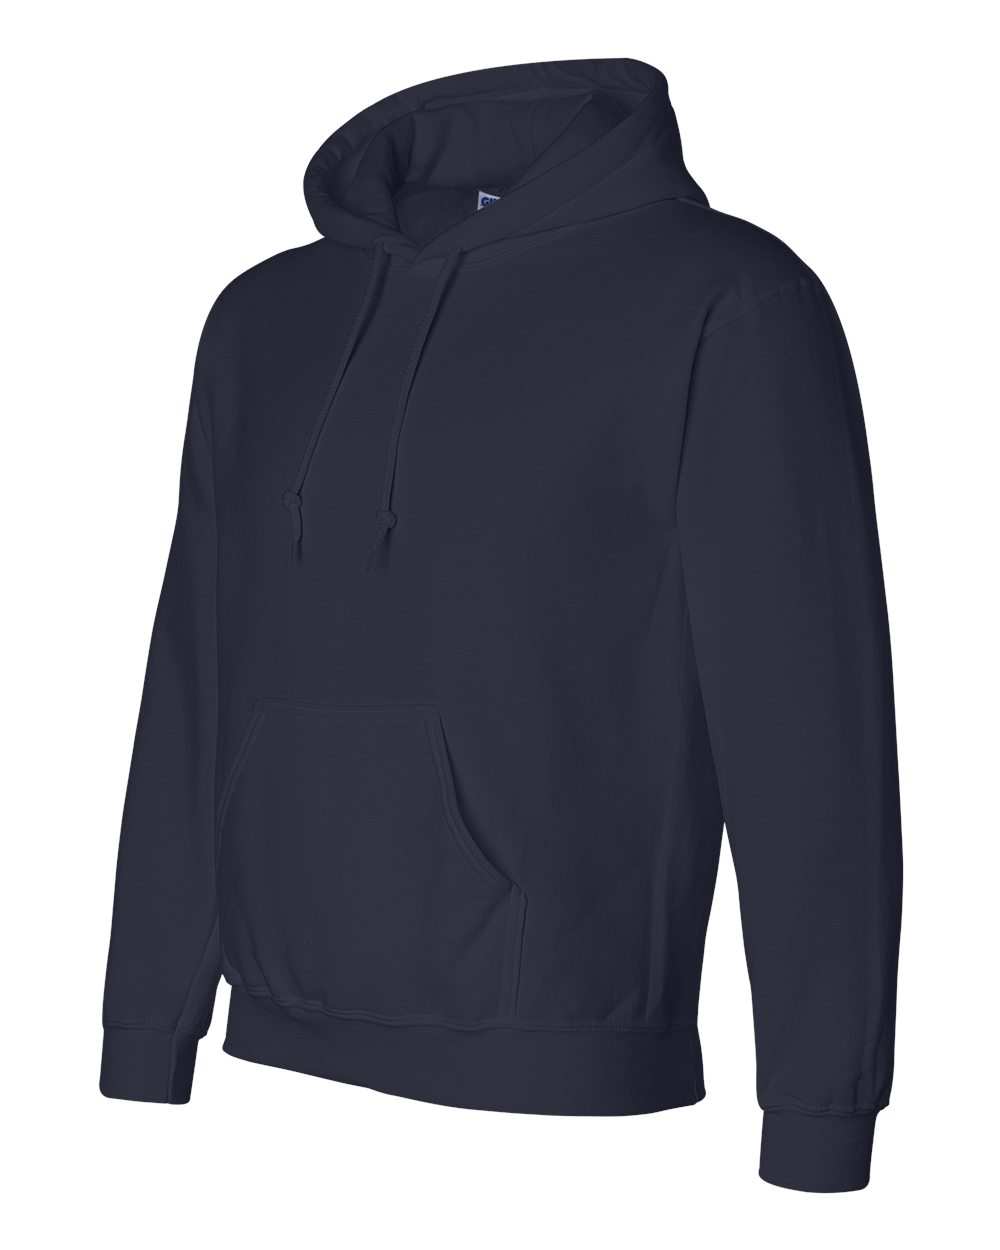 Gildan Ultra Blend Hooded sweater GIL12500 Navy